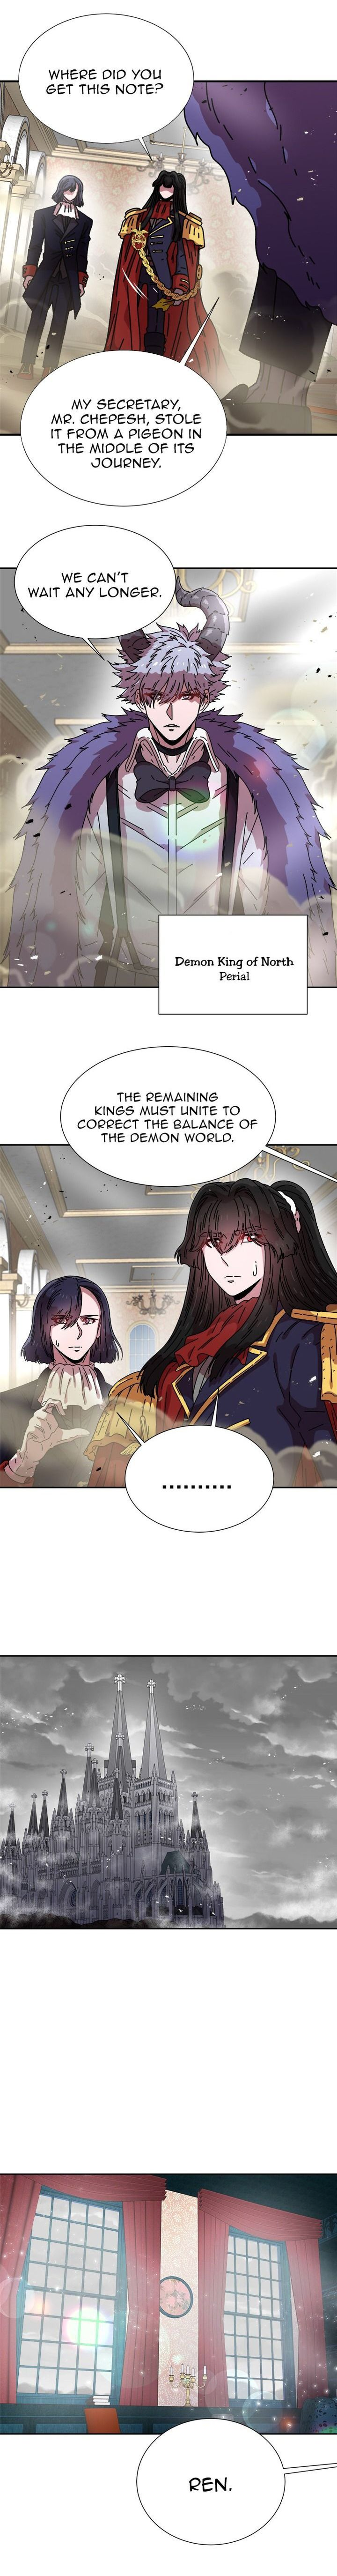 i_was_born_as_the_demon_lords_daughter_38_4